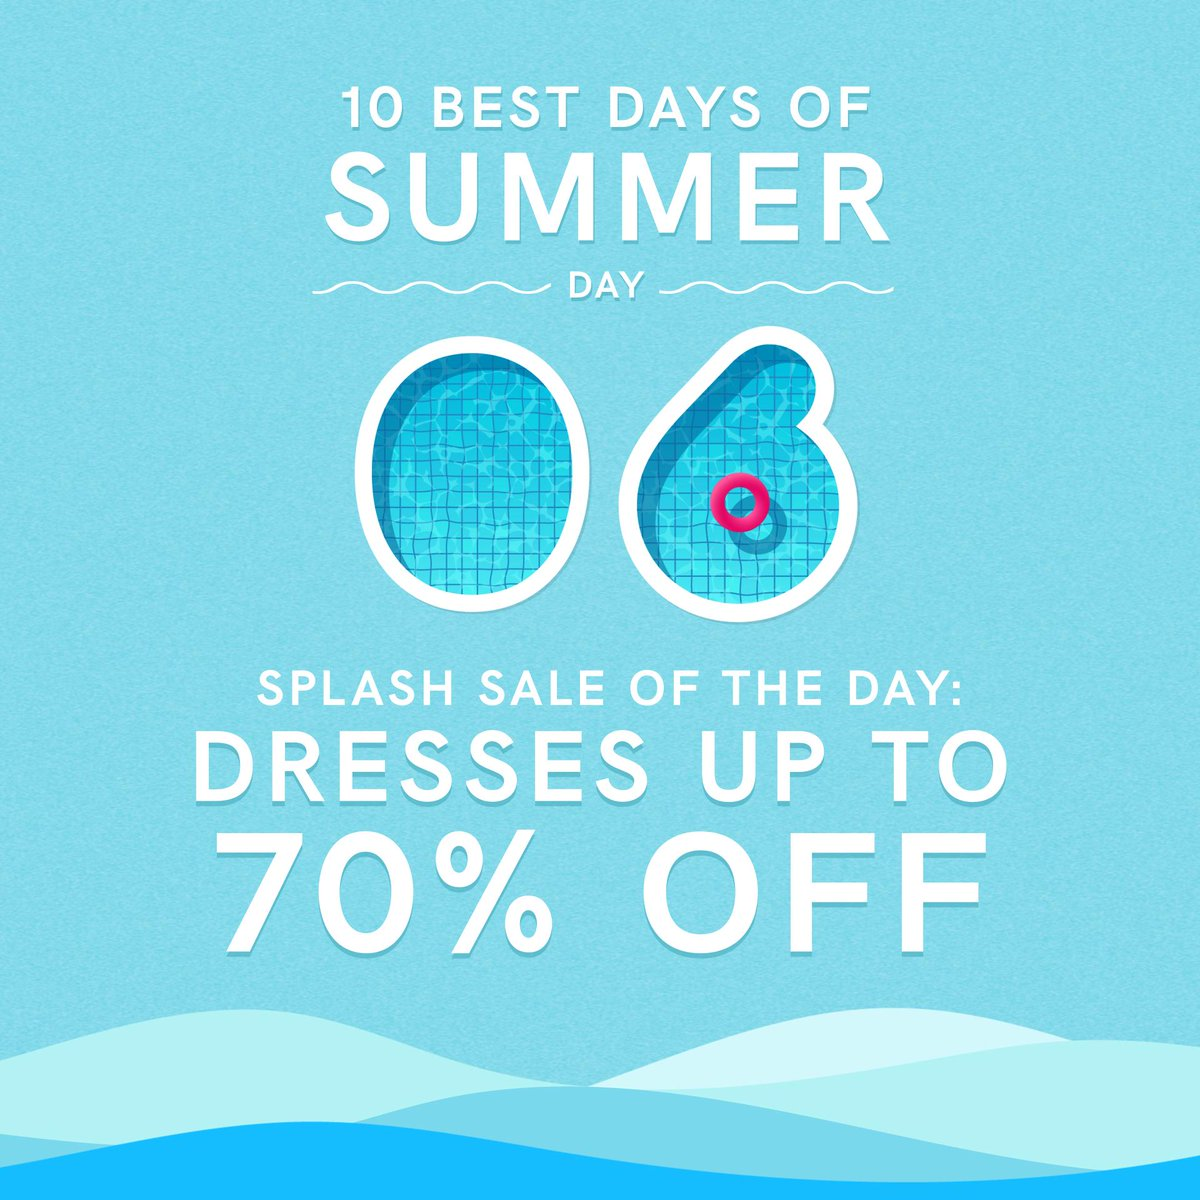 Save up to 70% on dresses for every occasion during our 10 Best Days of Summer event!  Shop Dresses: https://t.co/zM7m3PdQXc~ https://t.co/Liz4VRSFhn